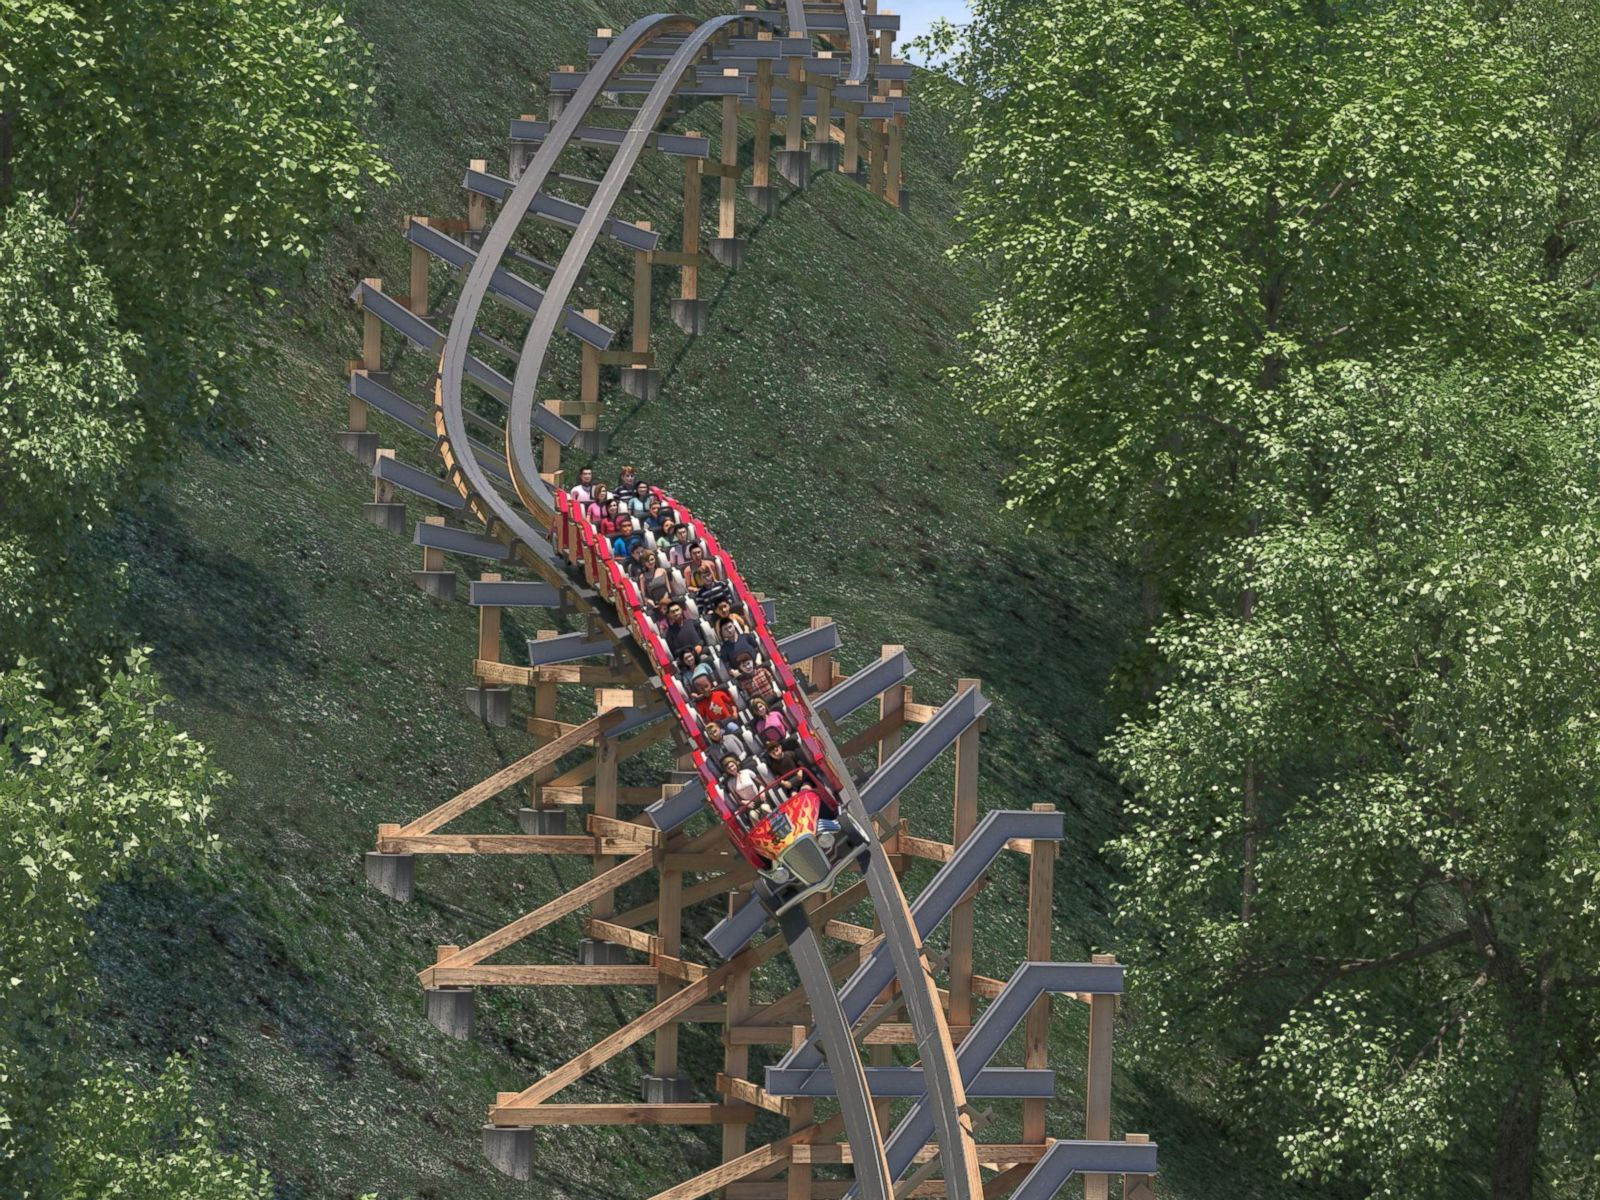 World's Fastest' Wooden Coaster to Open at Dollywood - ABC News